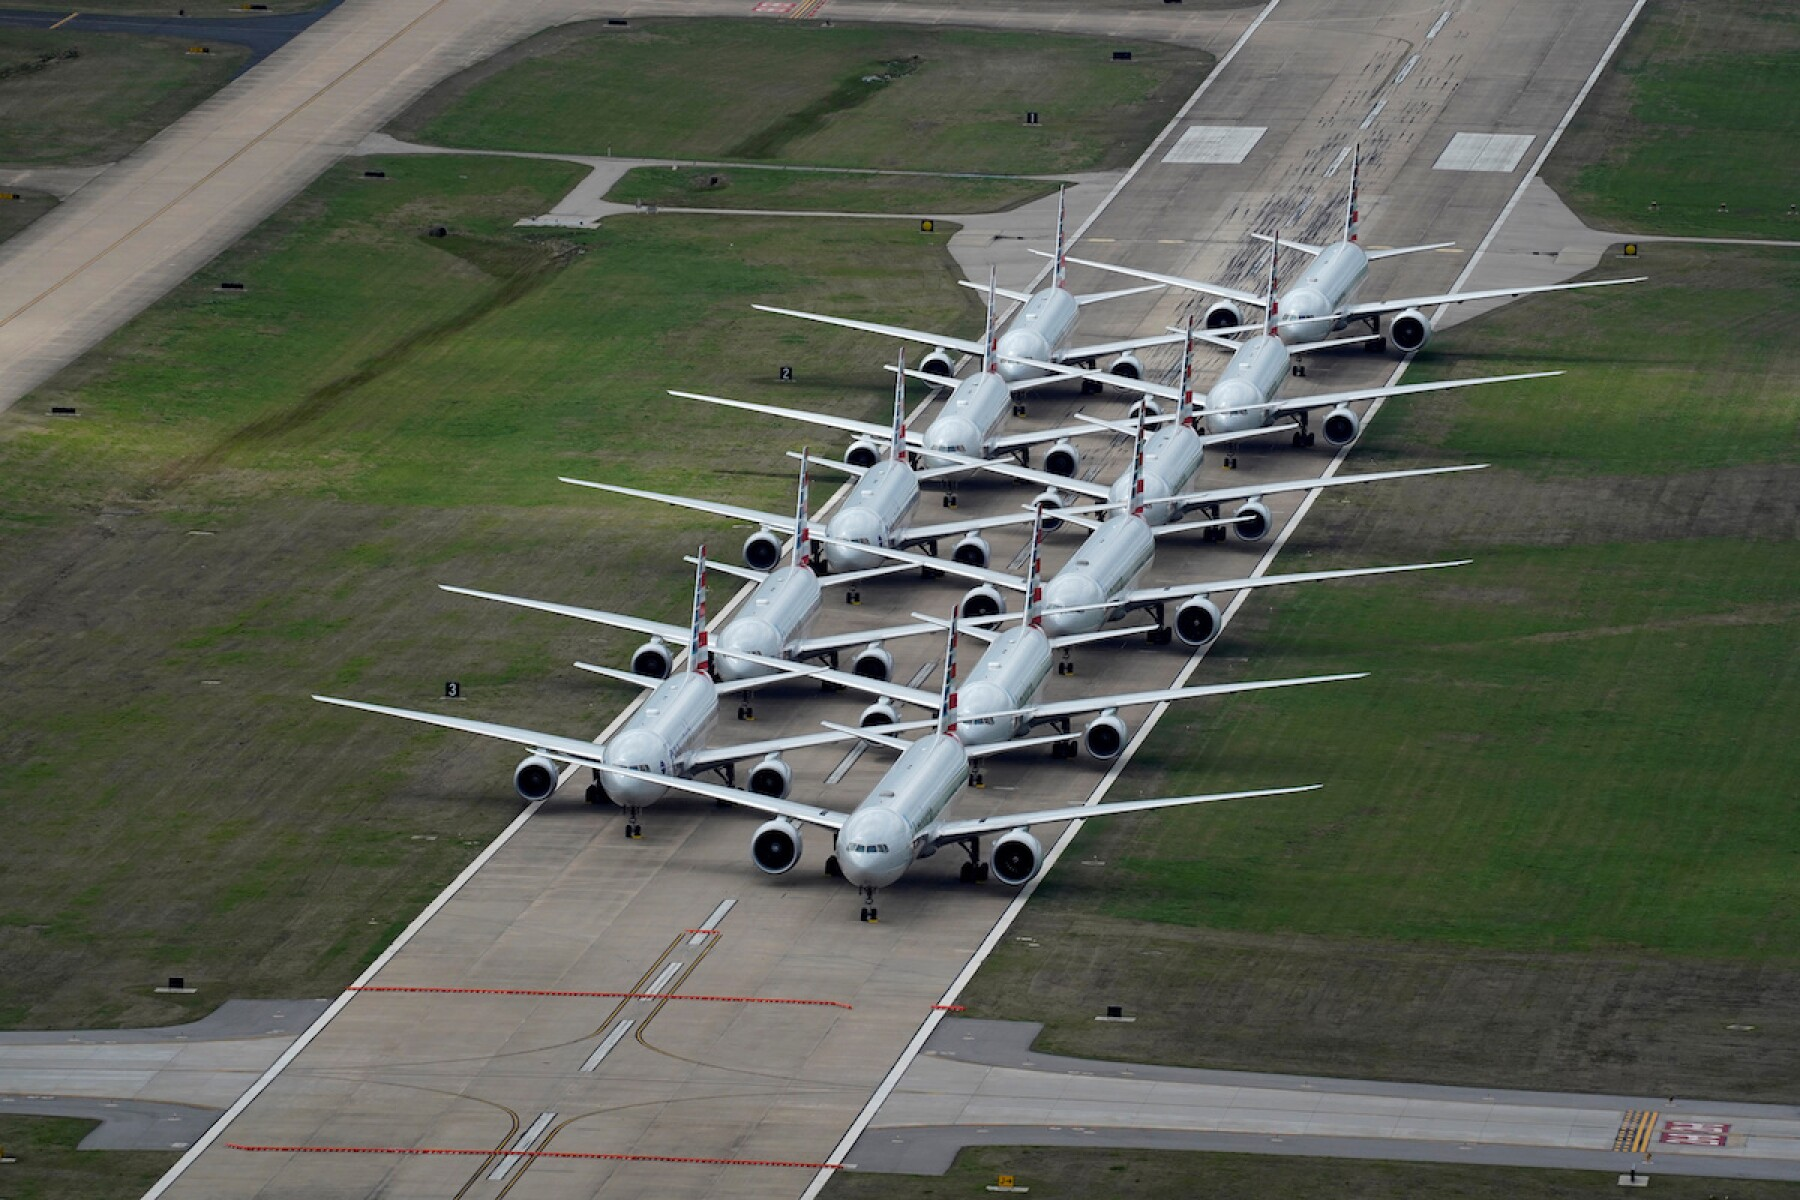 FILE PHOTO: American Airlines passenger planes crowd a runway in Tulsa